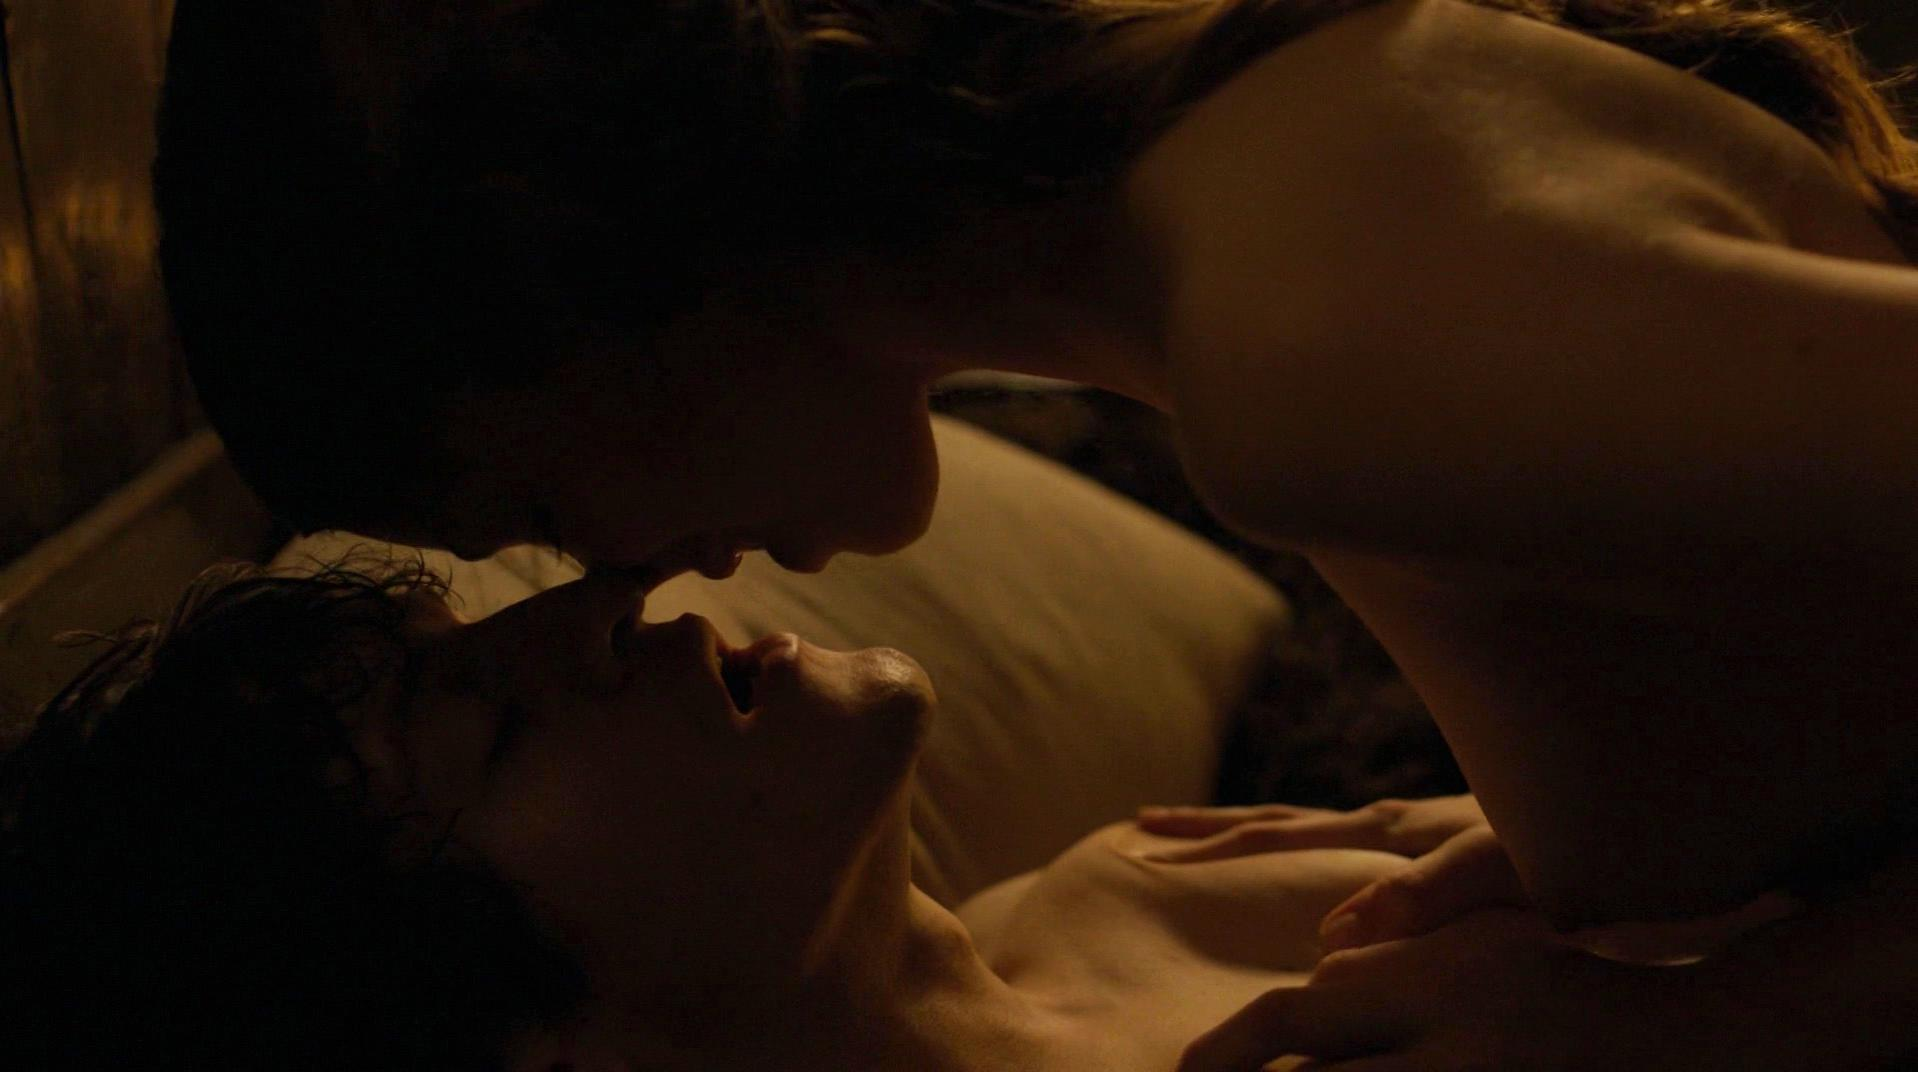 Sarine Sofair nude, Charlotte Hope nude - Game of Thrones s04e06 (2014)